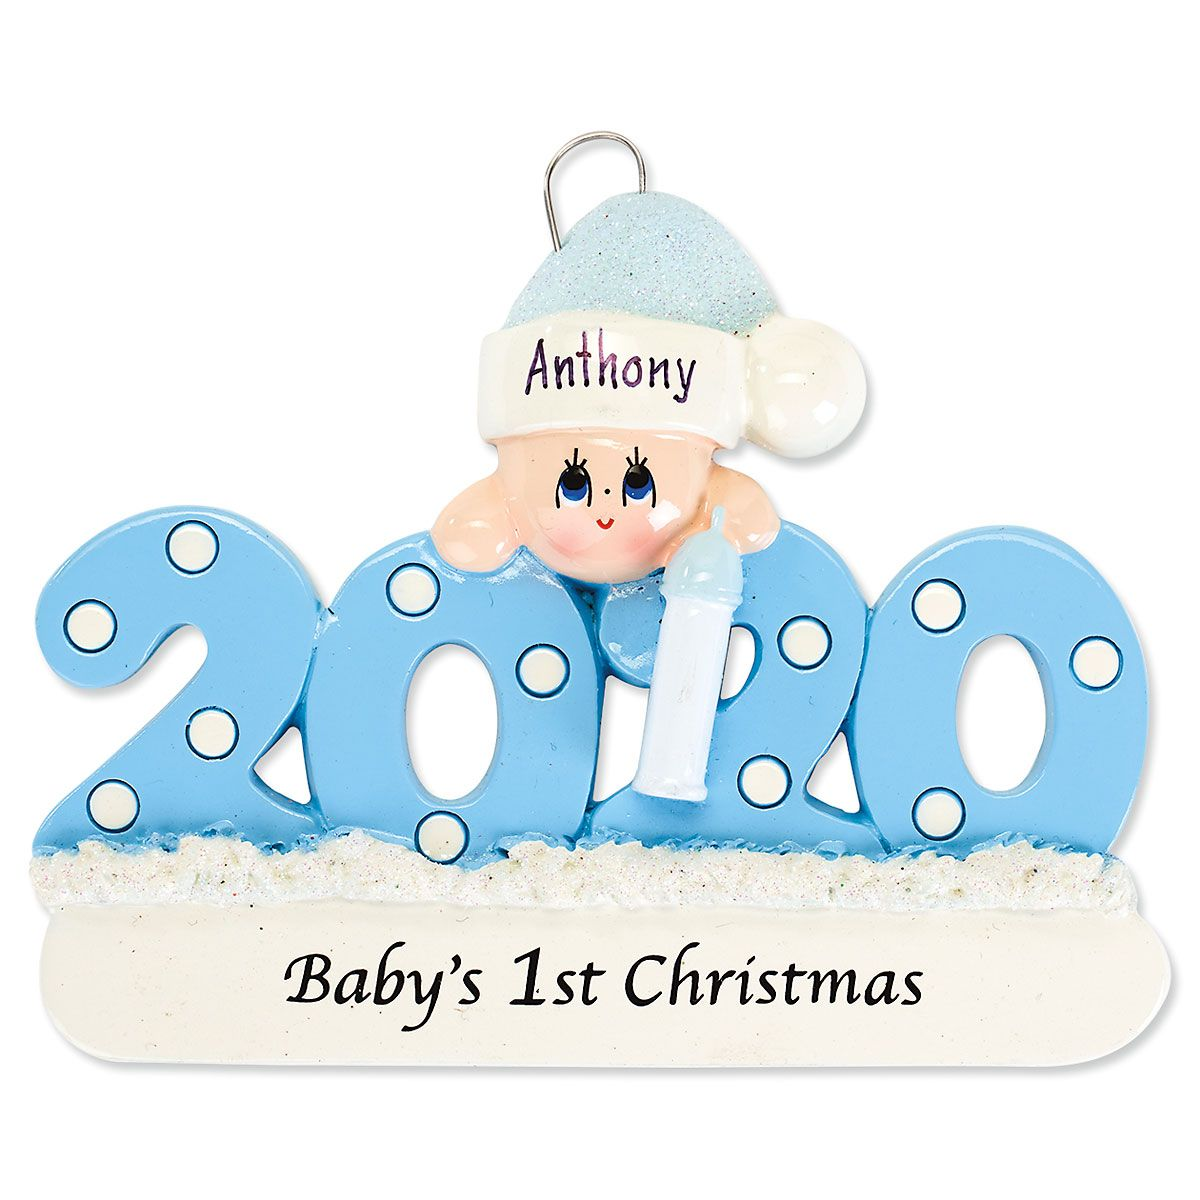 Baby's First Christmas 2020 Hand-Lettered Christmas Ornament